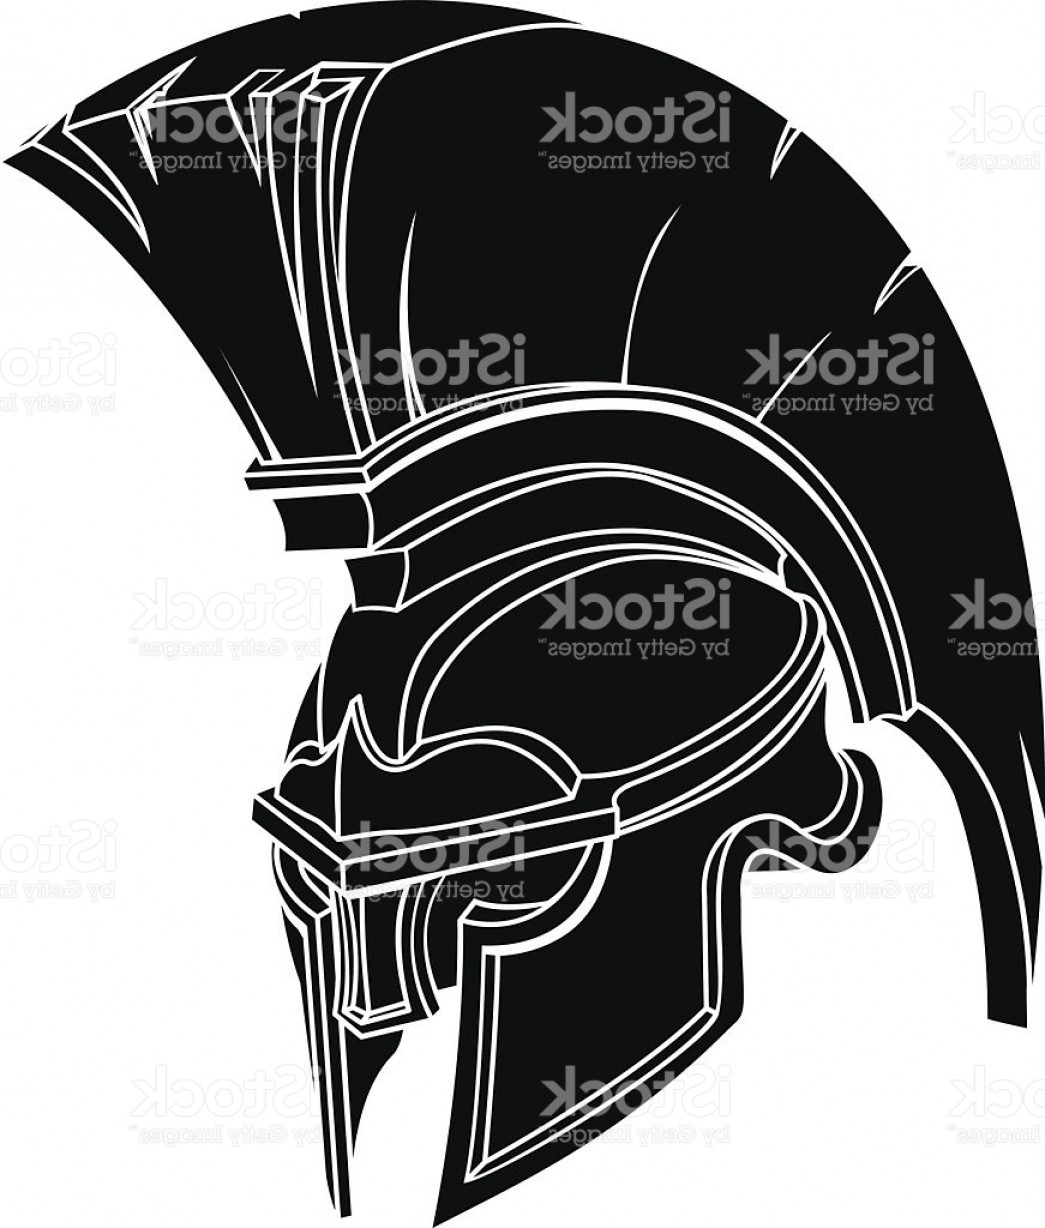 Boba Fett Vector Black And White: Spartan Or Trojan Helmet Gm